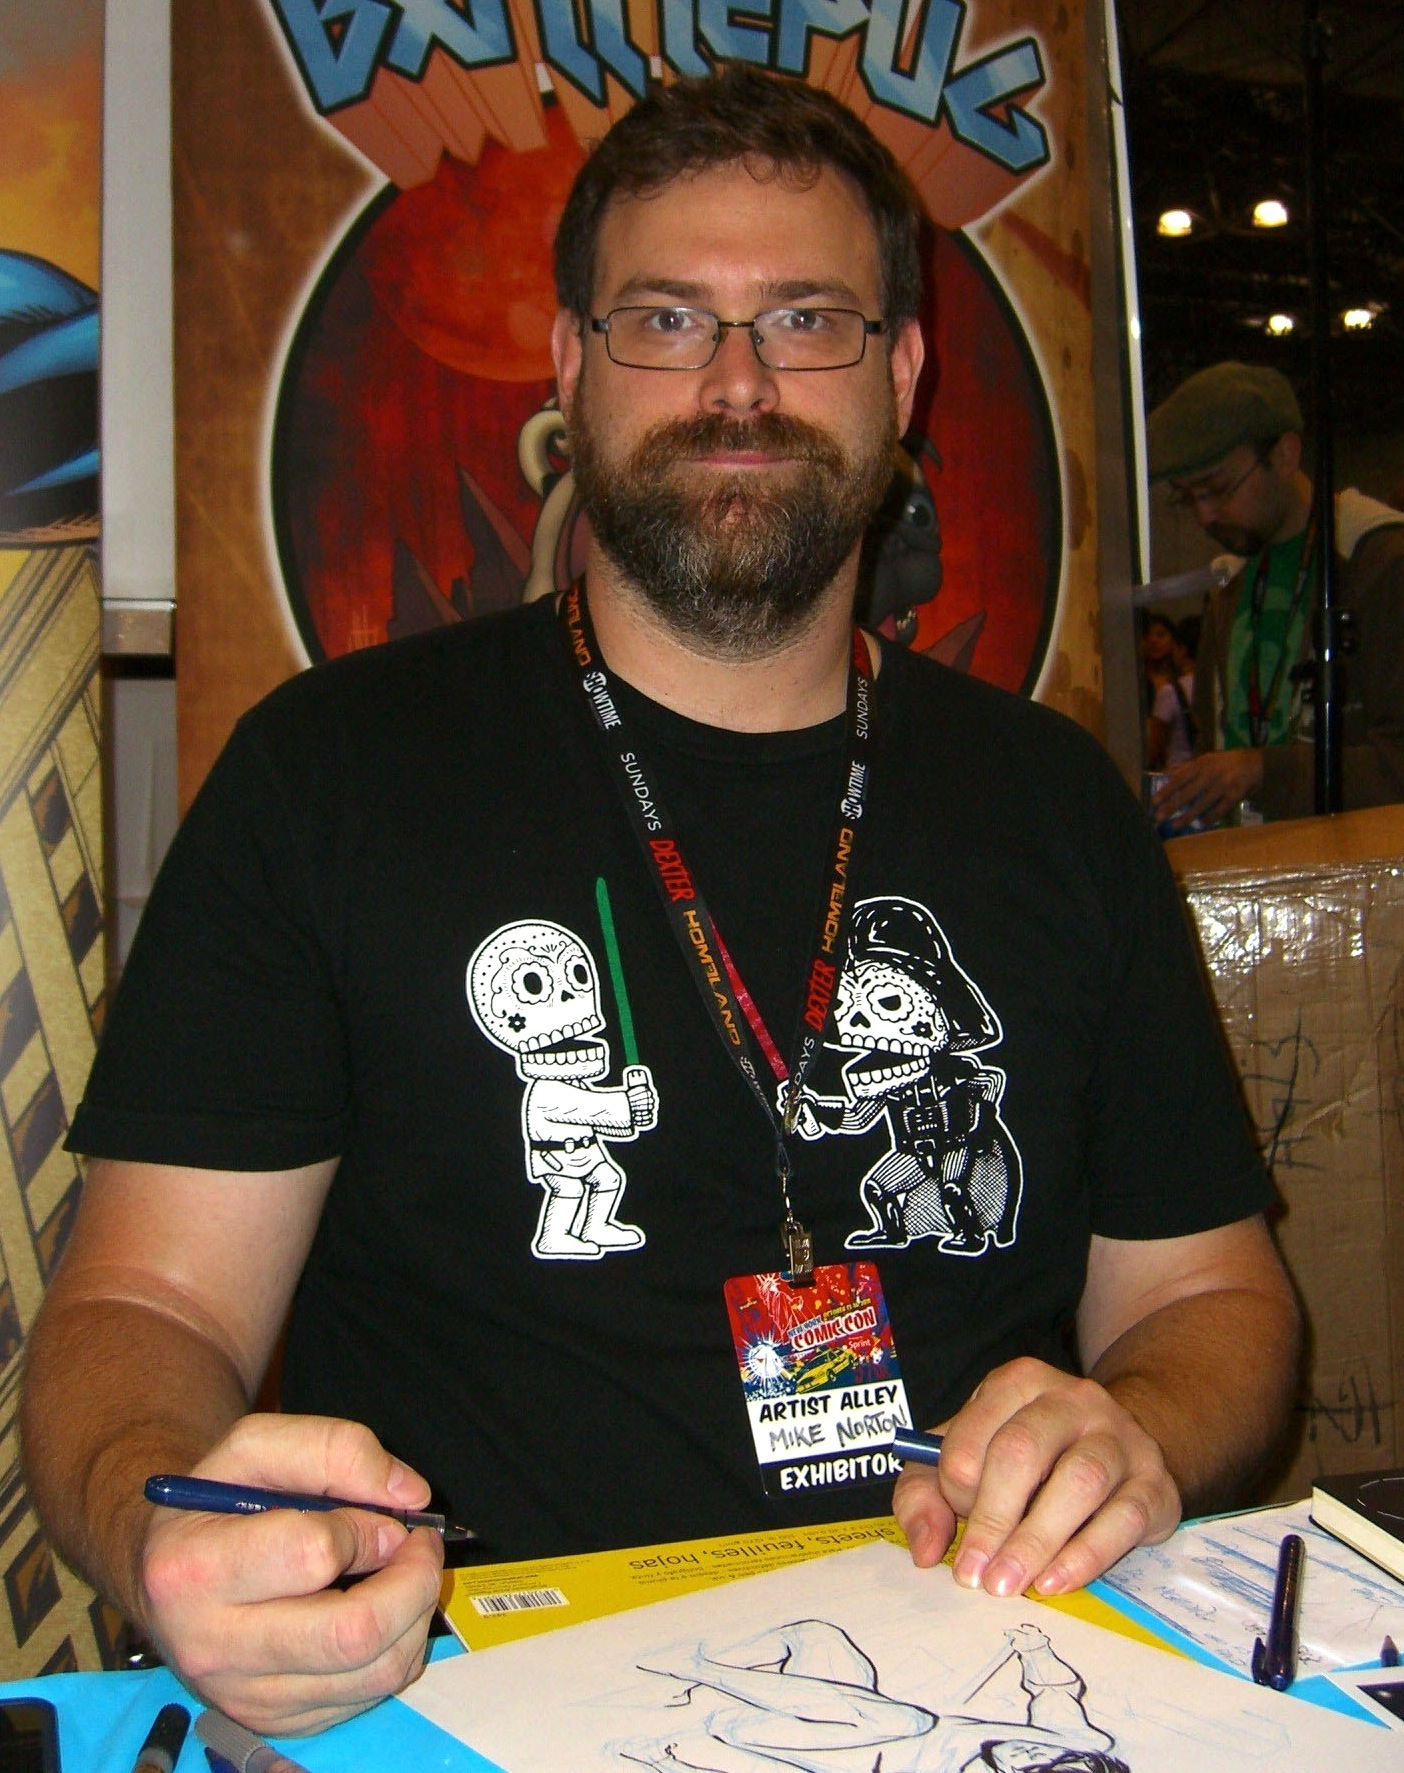 Norton at the 2011 [[New York Comic Con]].